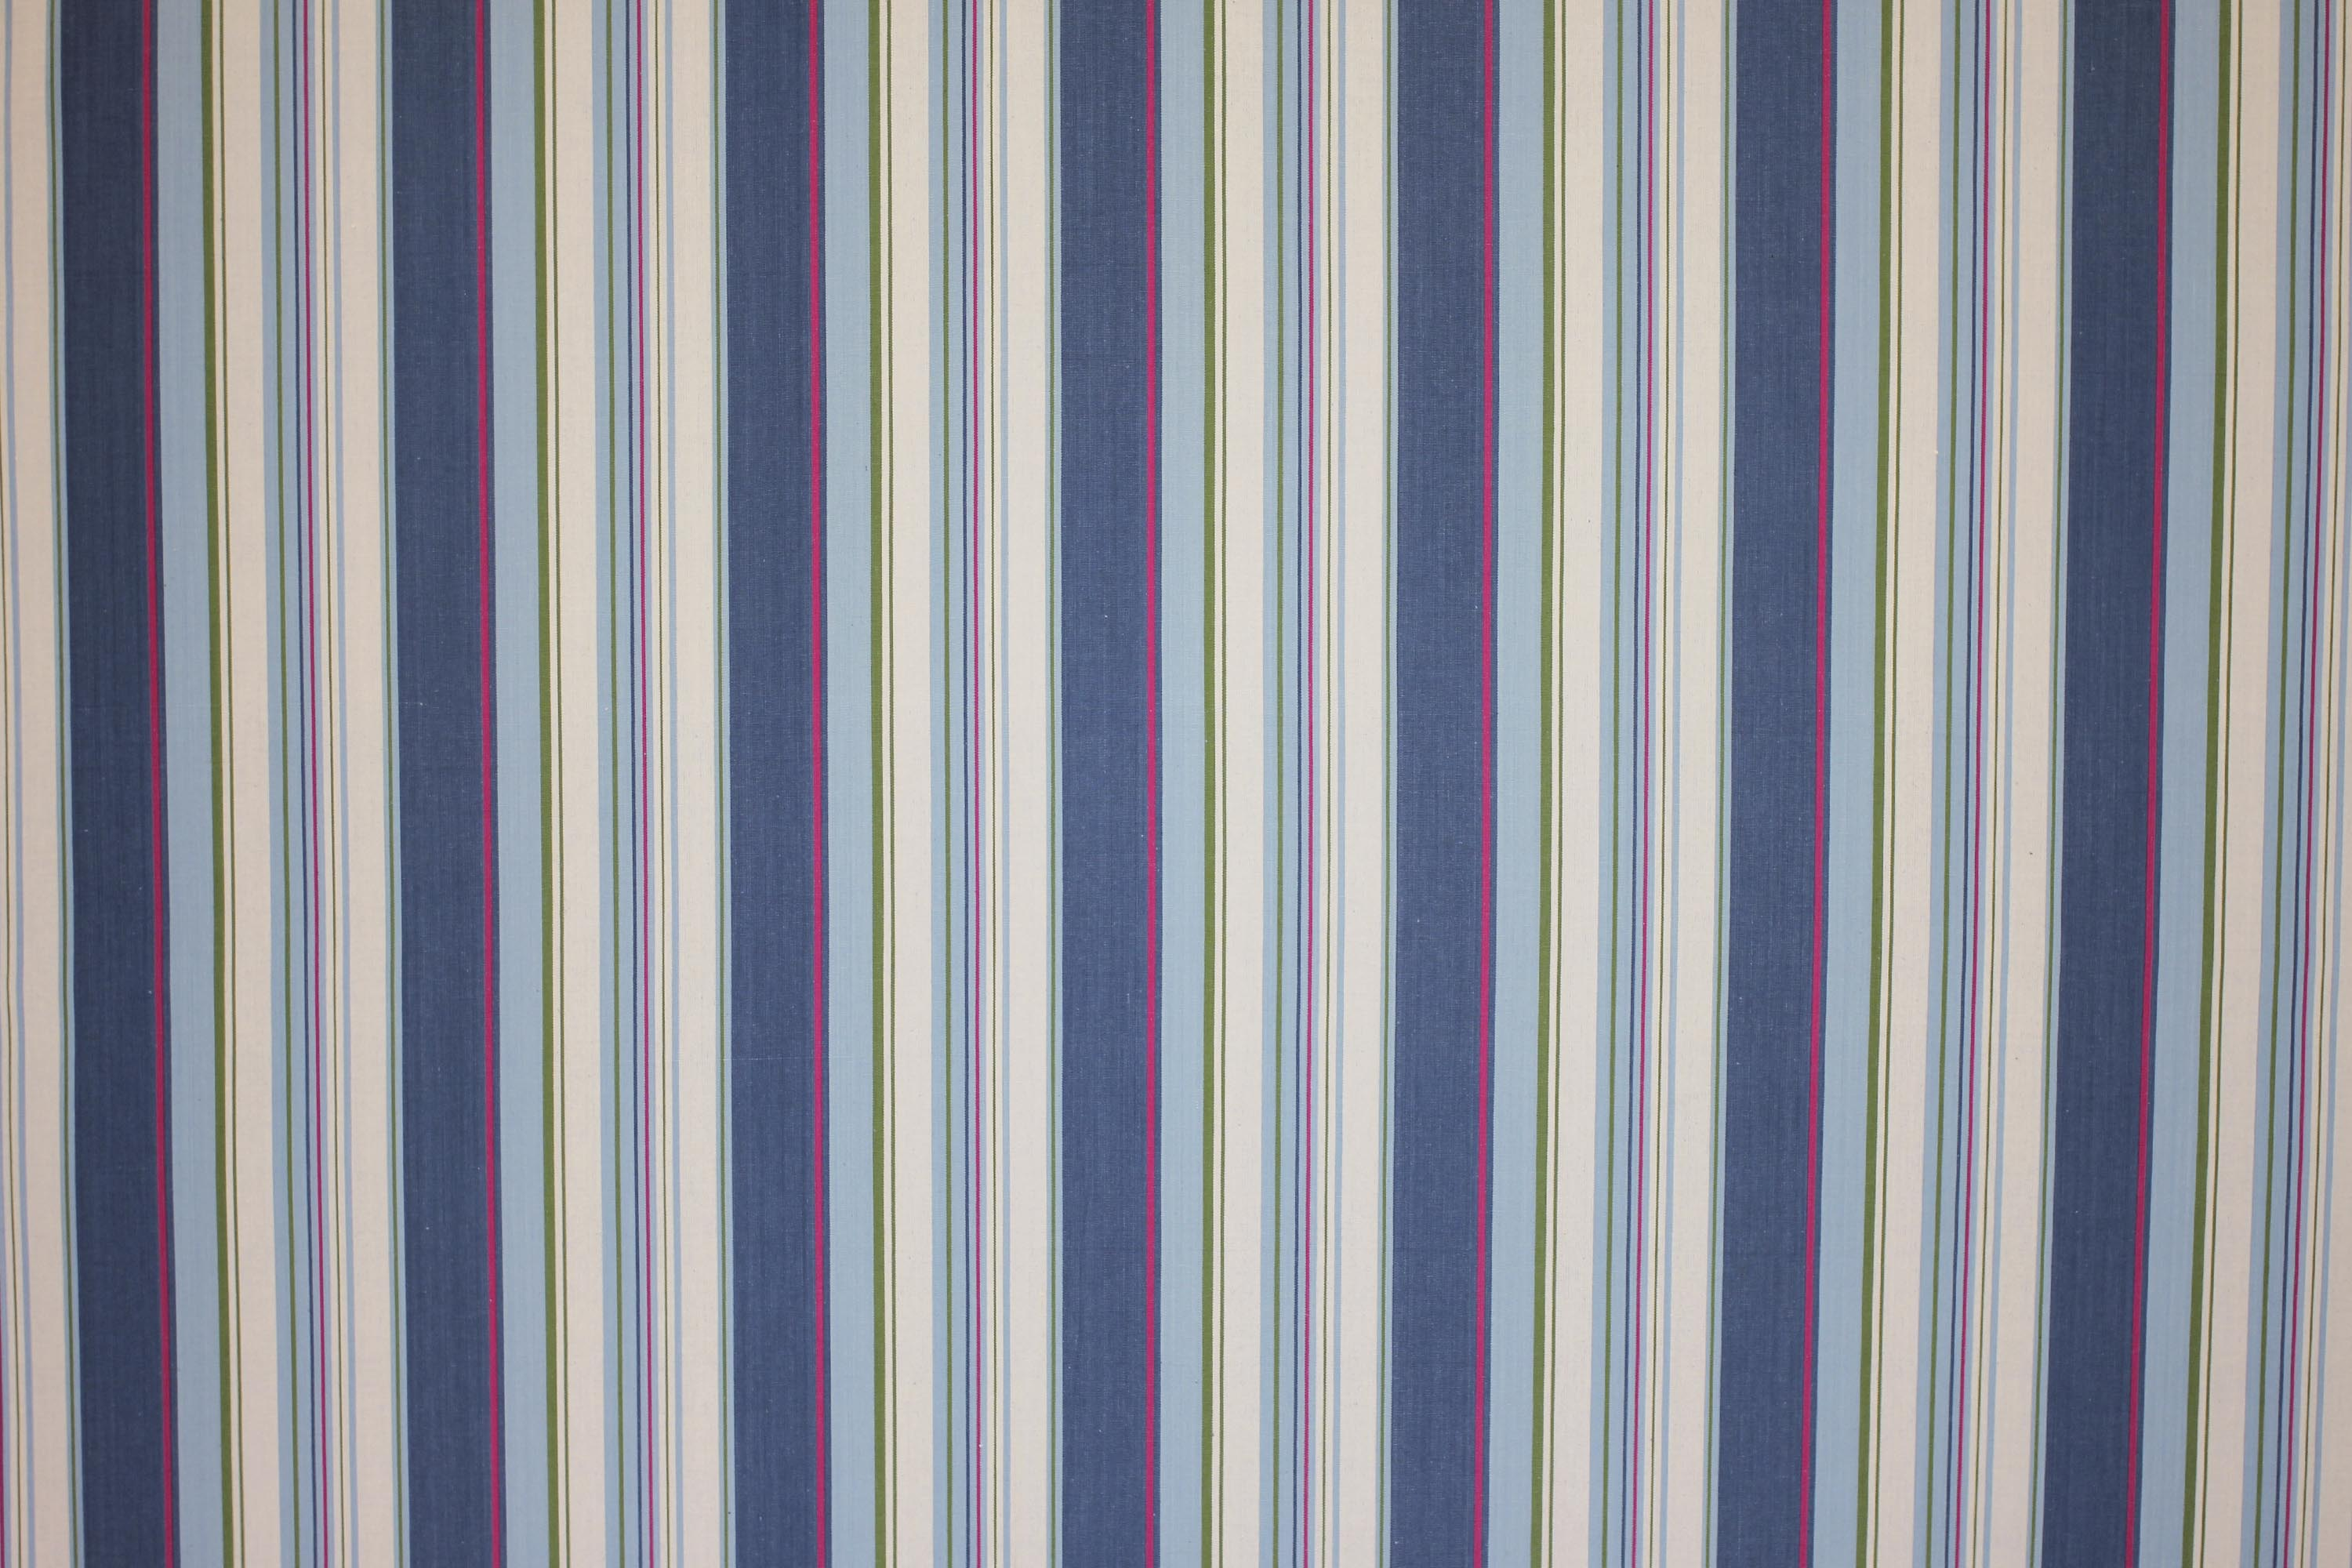 Petrol Blue Striped Fabrics | Stripe Cotton Fabrics | Striped Curtain Fabrics | Upholstery Fabrics  Petrol Blue  Pale Blue  Cream  Stripes